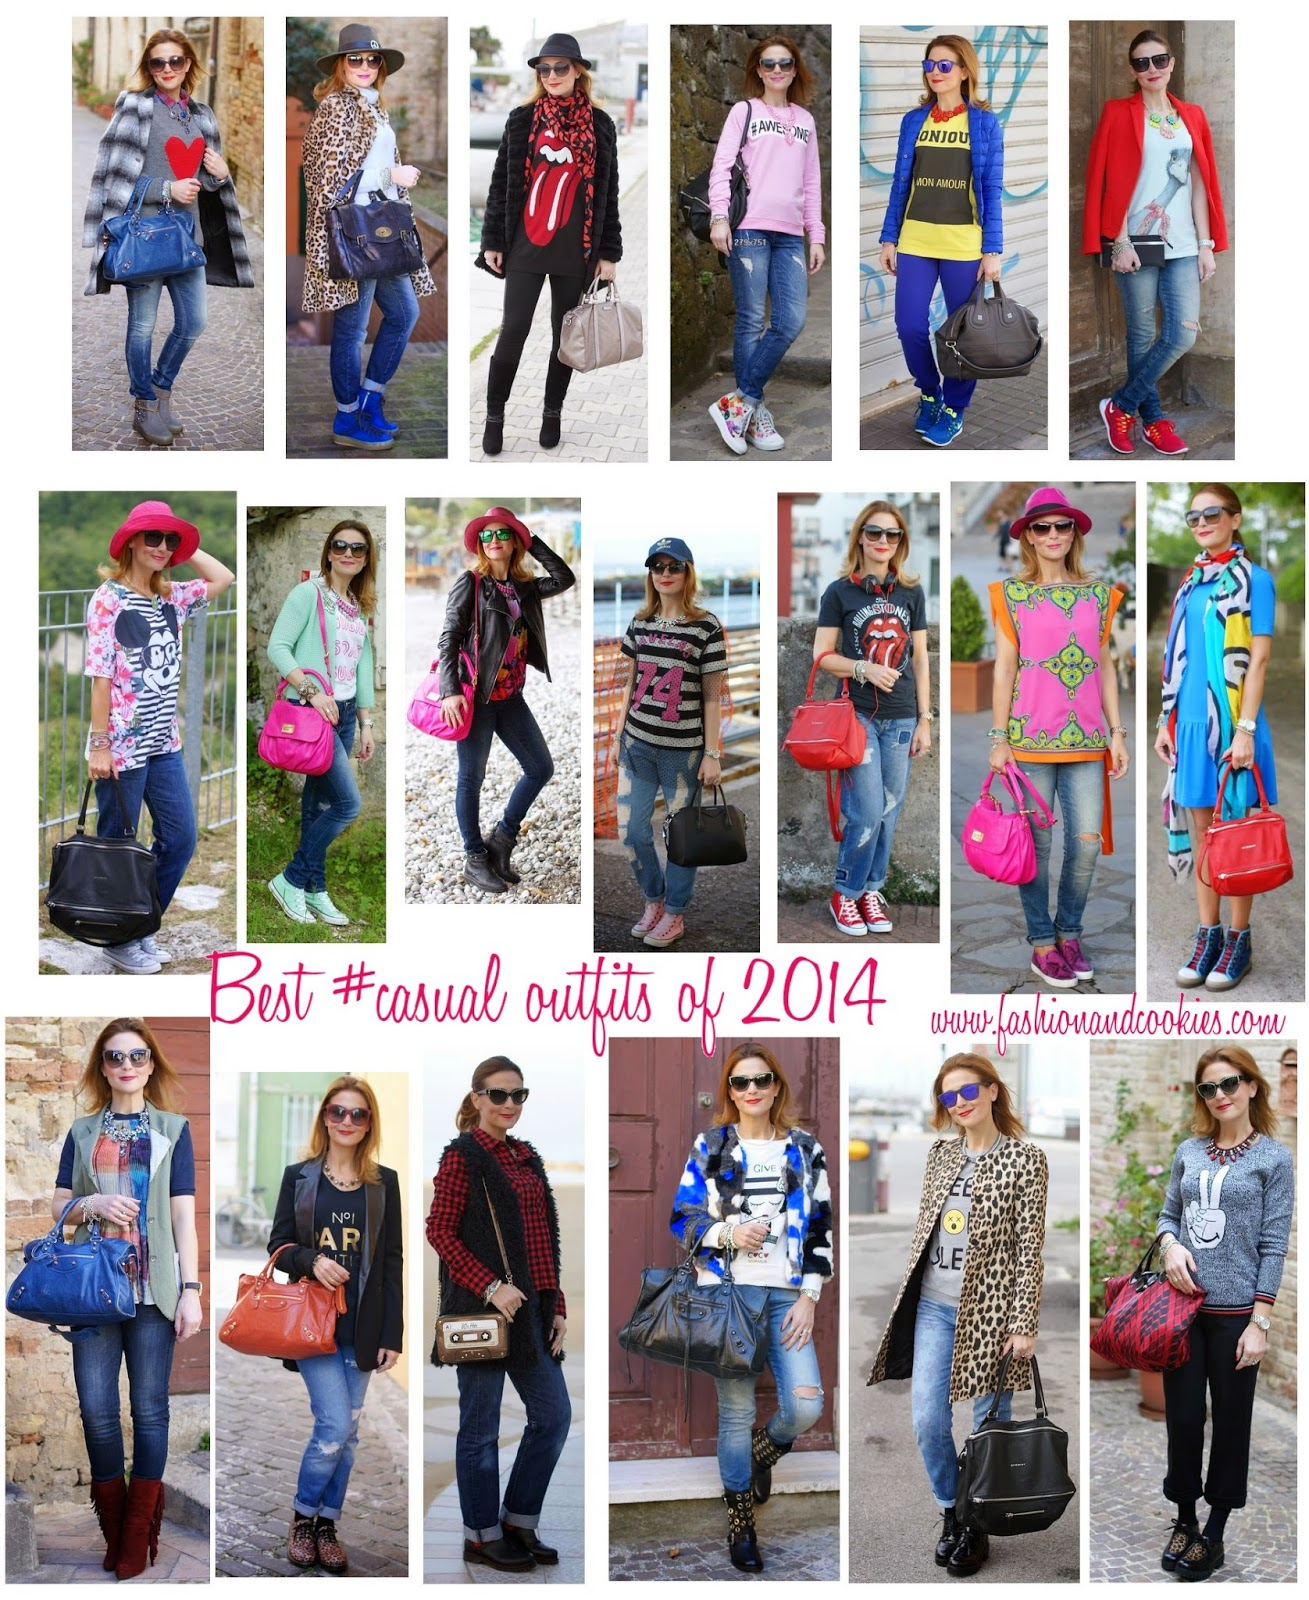 Welcome 2015, Benvenuto 2015, riepilogo outfit 2014, Happy New Year with Best Outfits of 2014 on Fashion and Cookies fashion blog